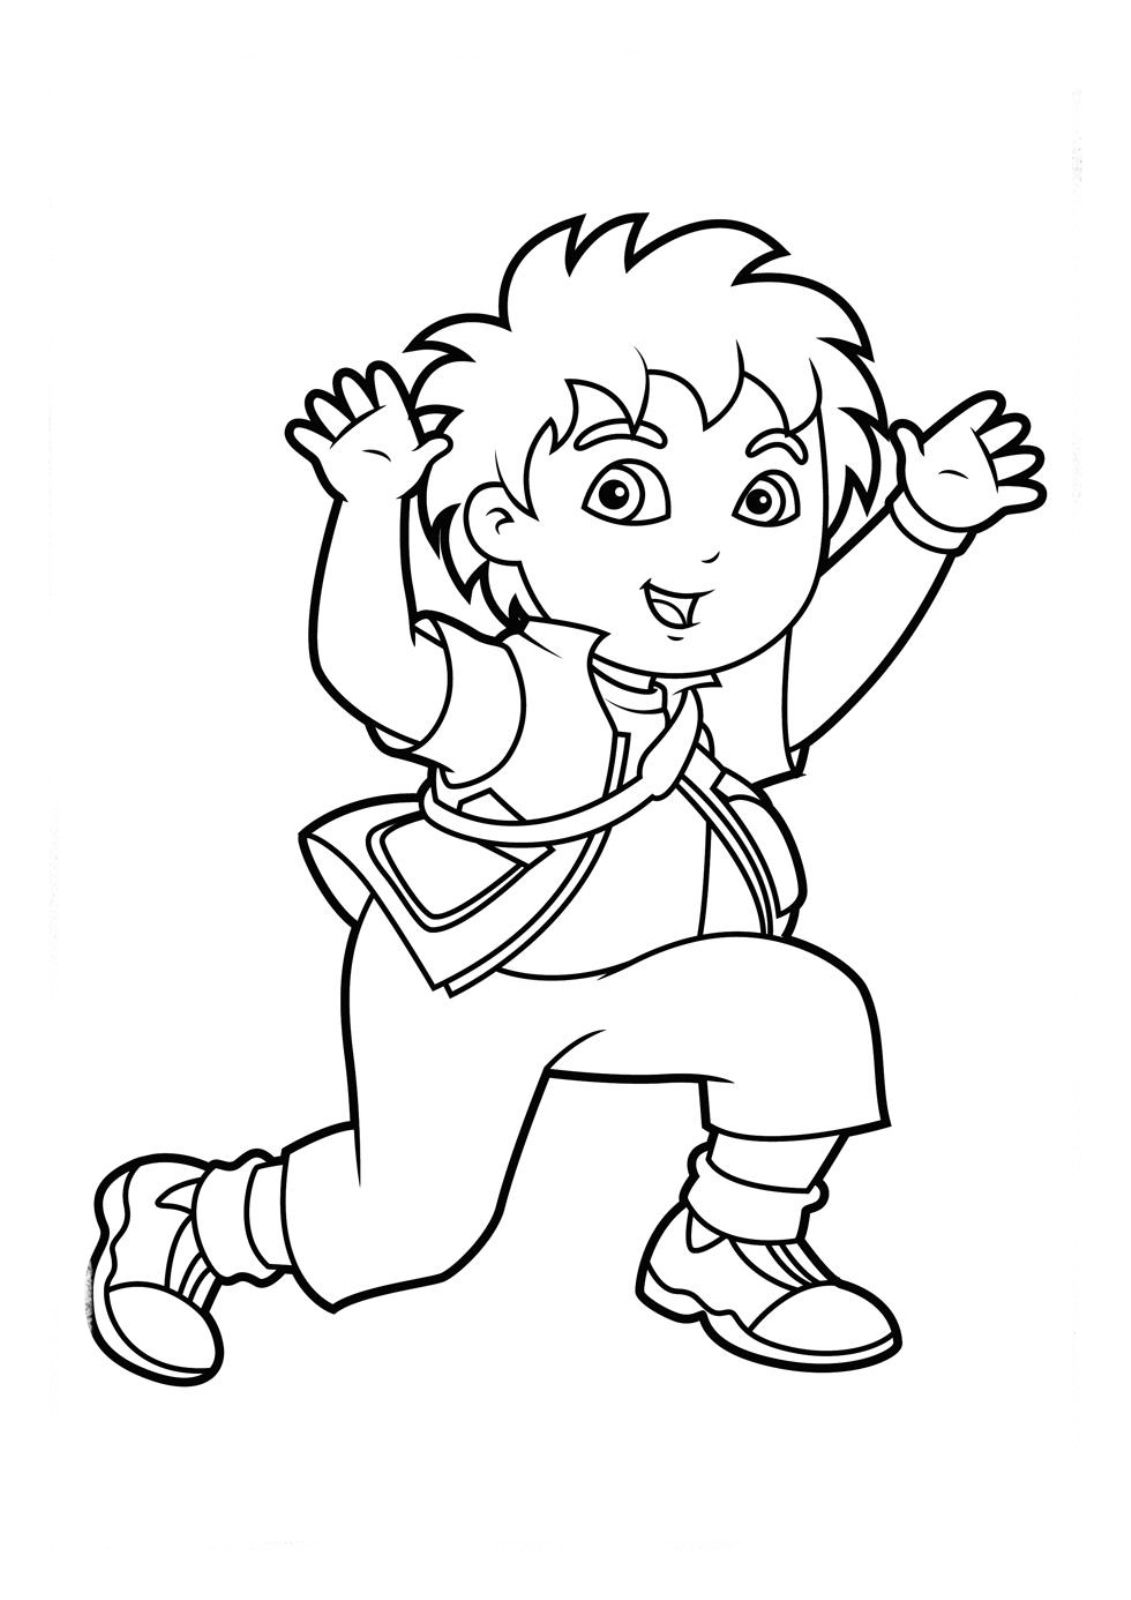 Printable Diego Coloring Pages For Kids Cartoon Coloring Pages Kids Printable Coloring Pages Coloring Pages